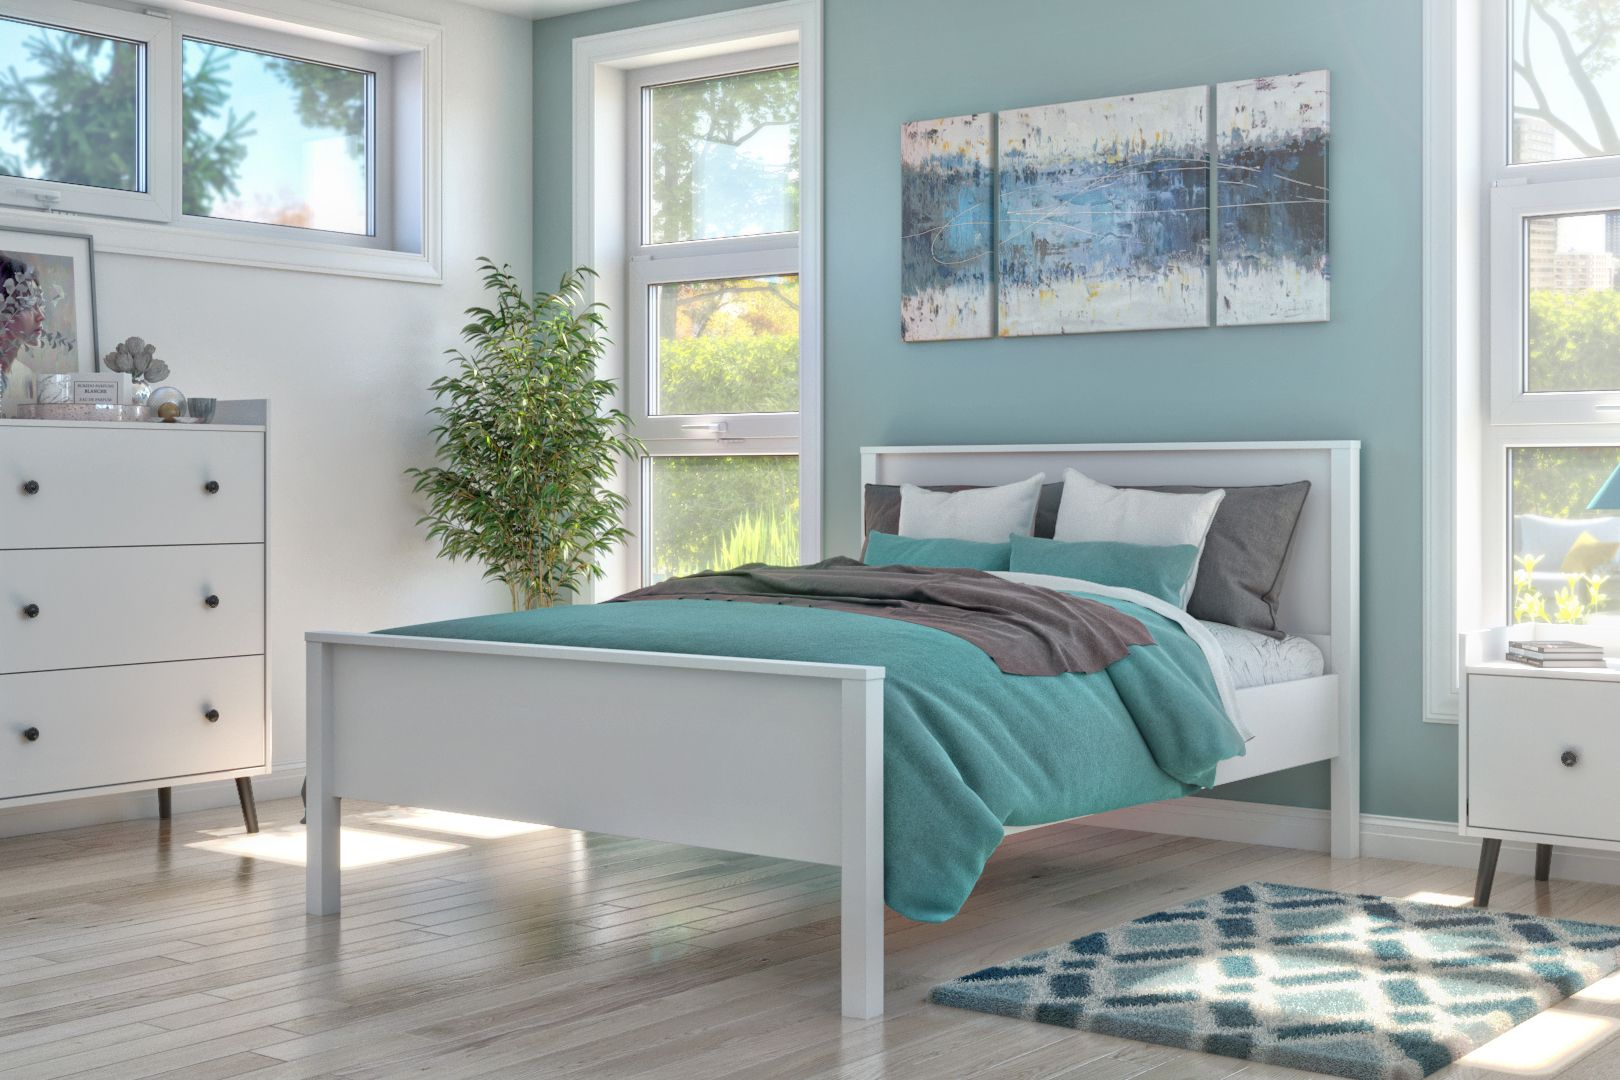 Lit plateforme / Platform Bed in 2020 Bedroom design